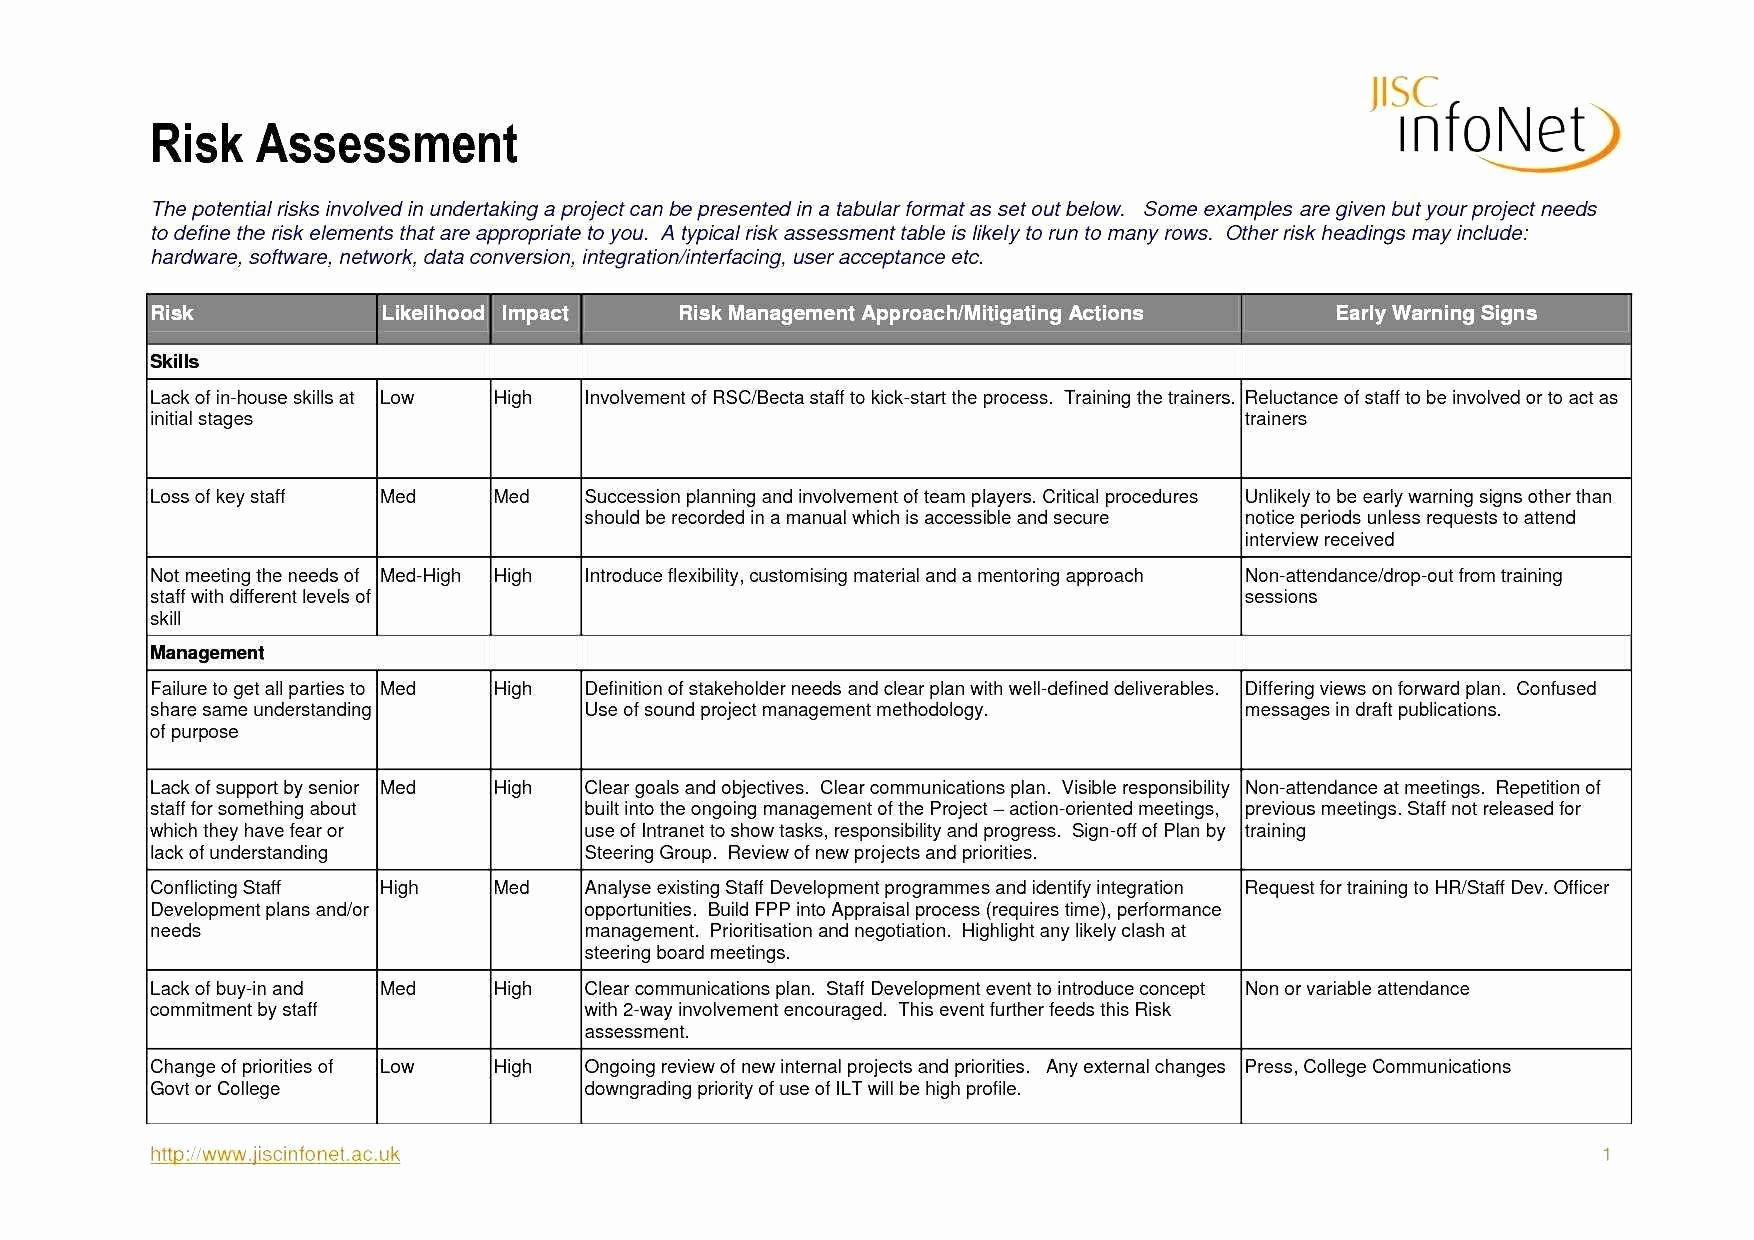 Nist Security assessment Plan Template Elegant Nist 800 171 Poa&m Template Lovely Information Security